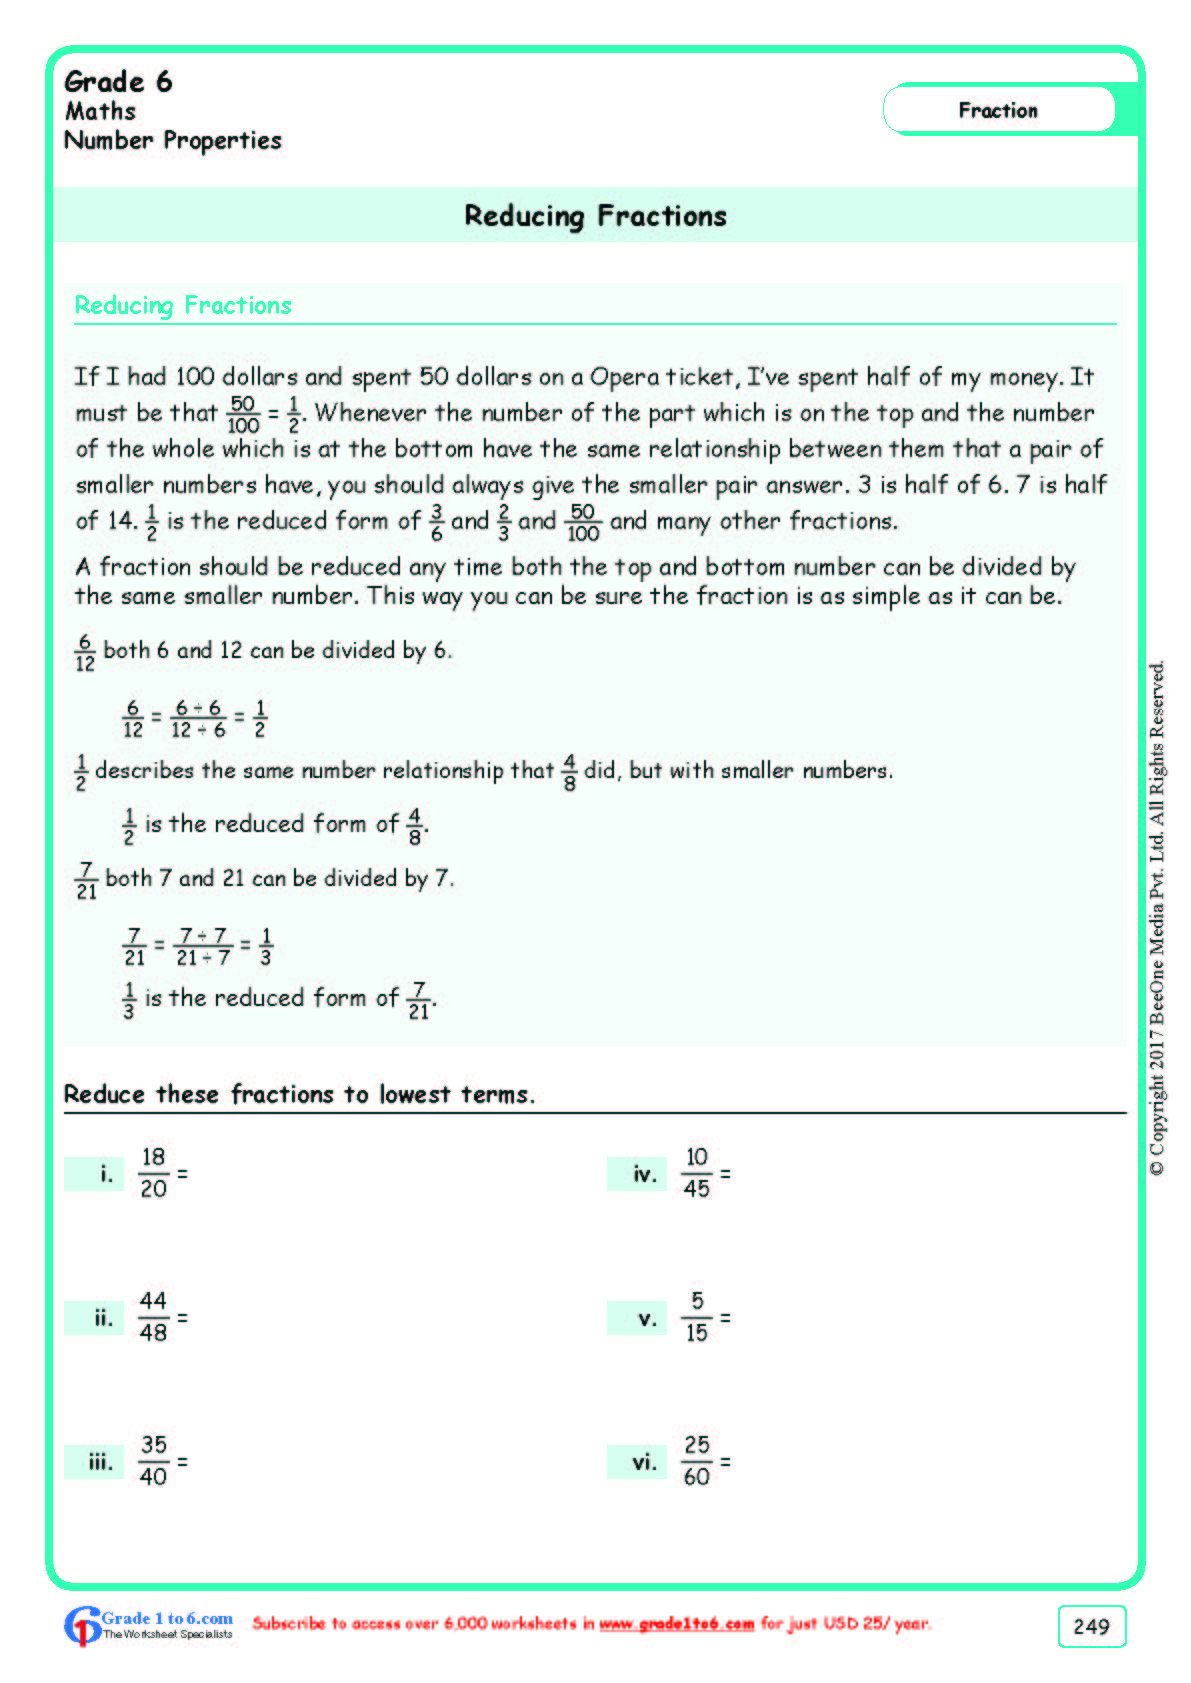 Worksheet Grade 6 Math Reducing Fractions In